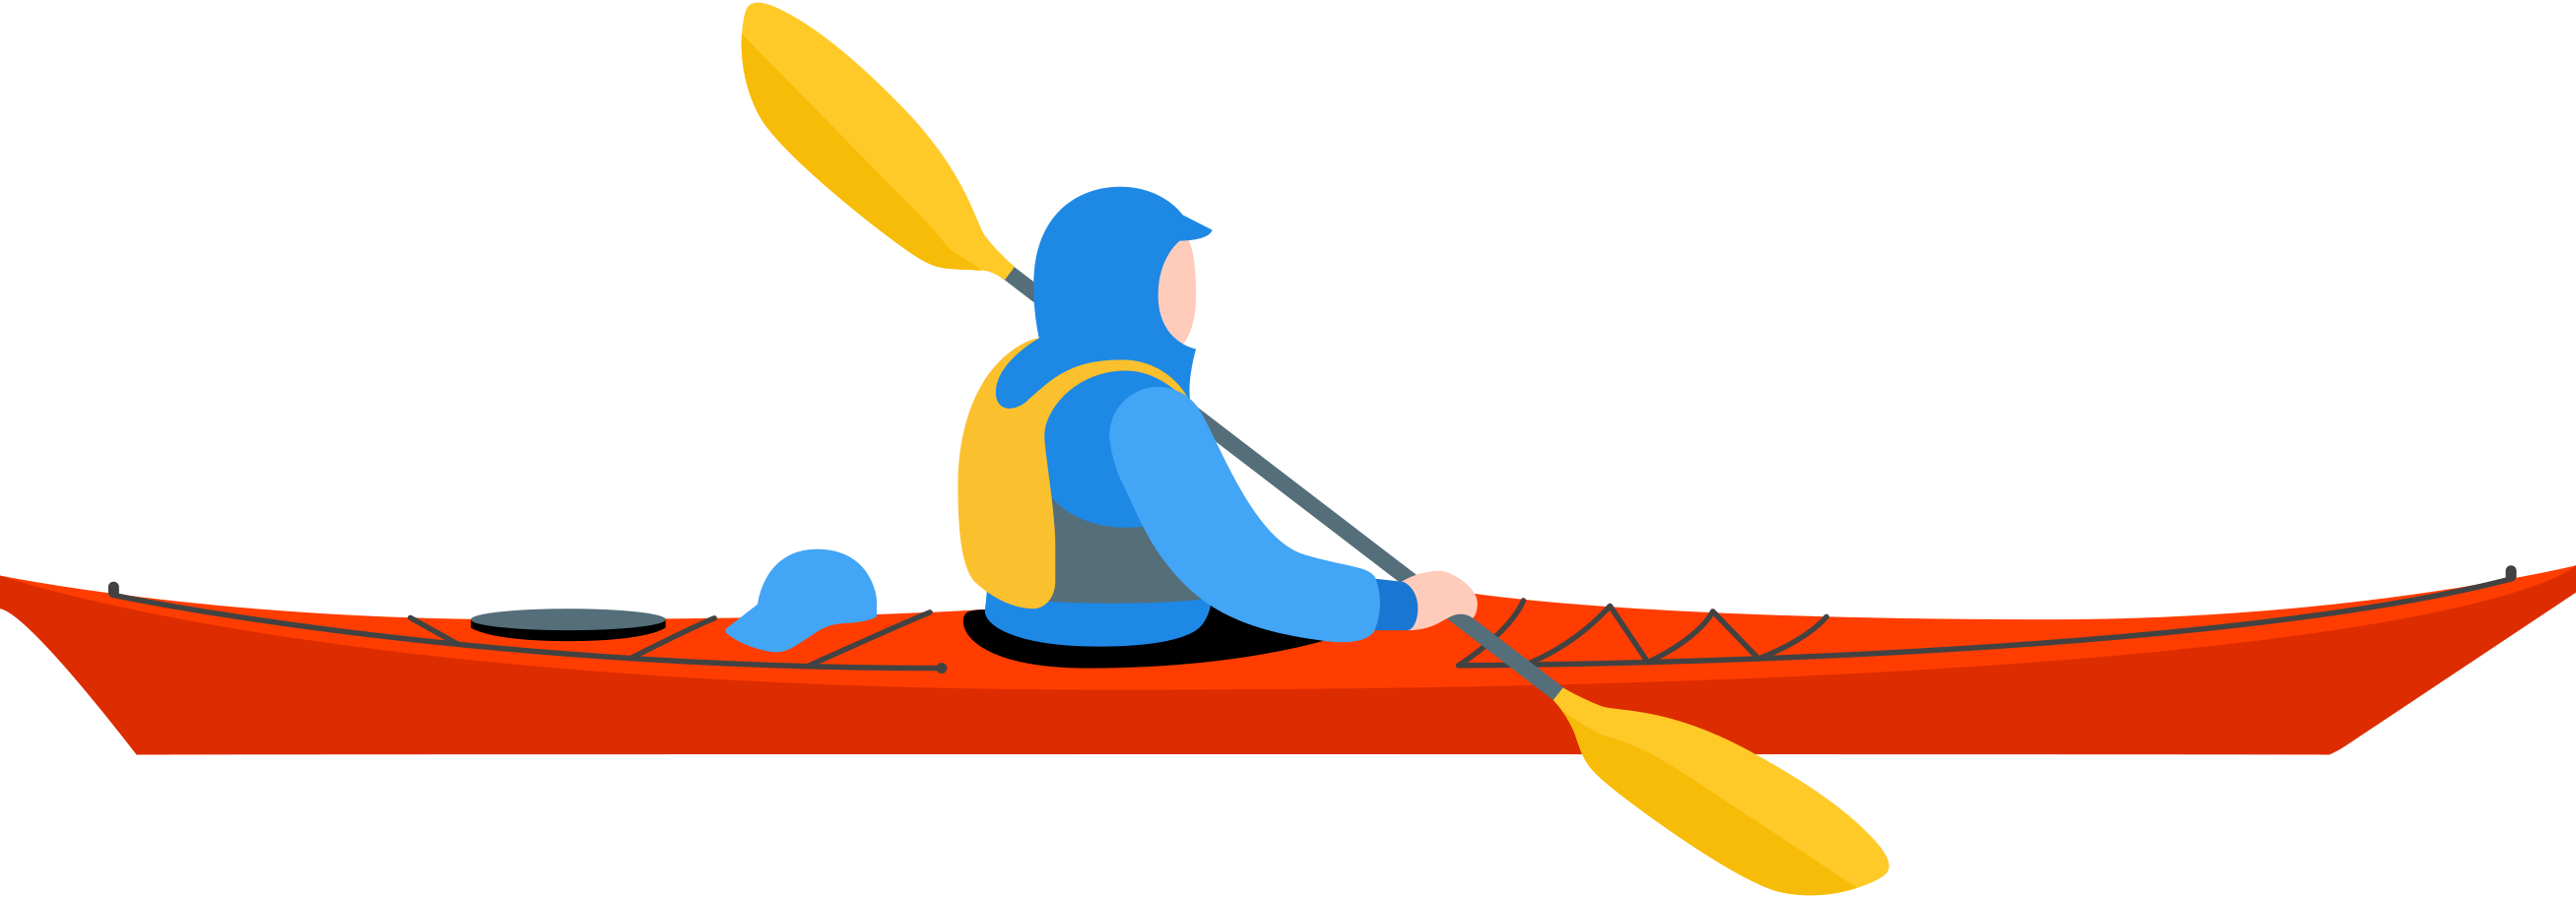 style kayaker Vector images in PNG and SVG | Icons8 Illustrations